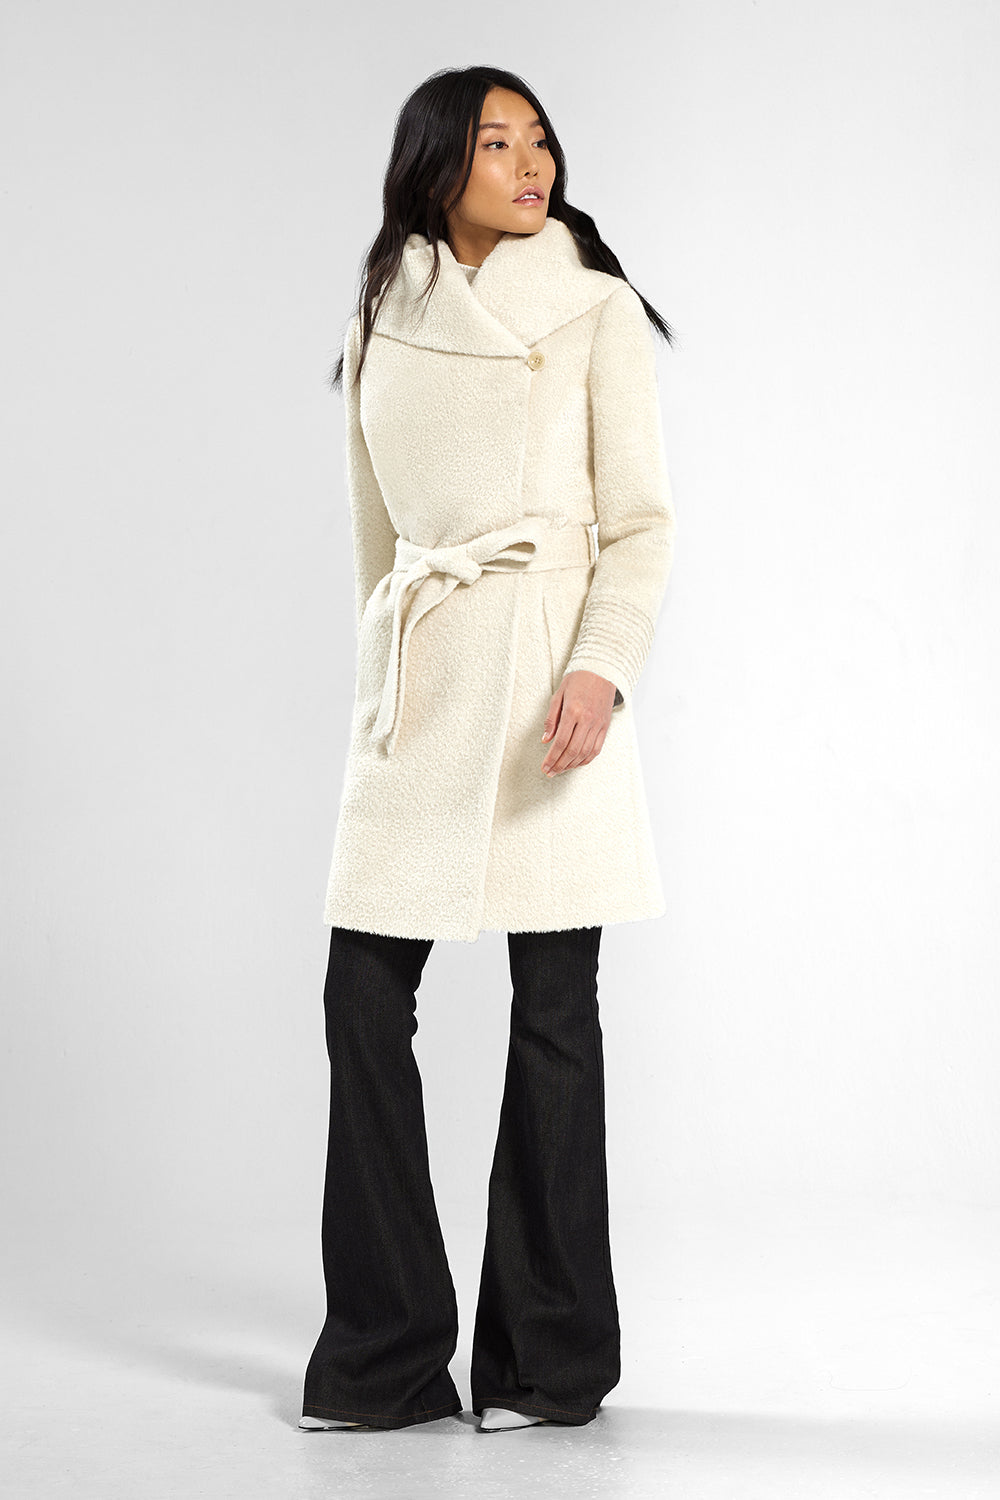 Sentaler Bouclé Alpaca Mid Length Hooded Wrap Coat featured in Bouclé Alpaca and available in Ivory. Seen from front.